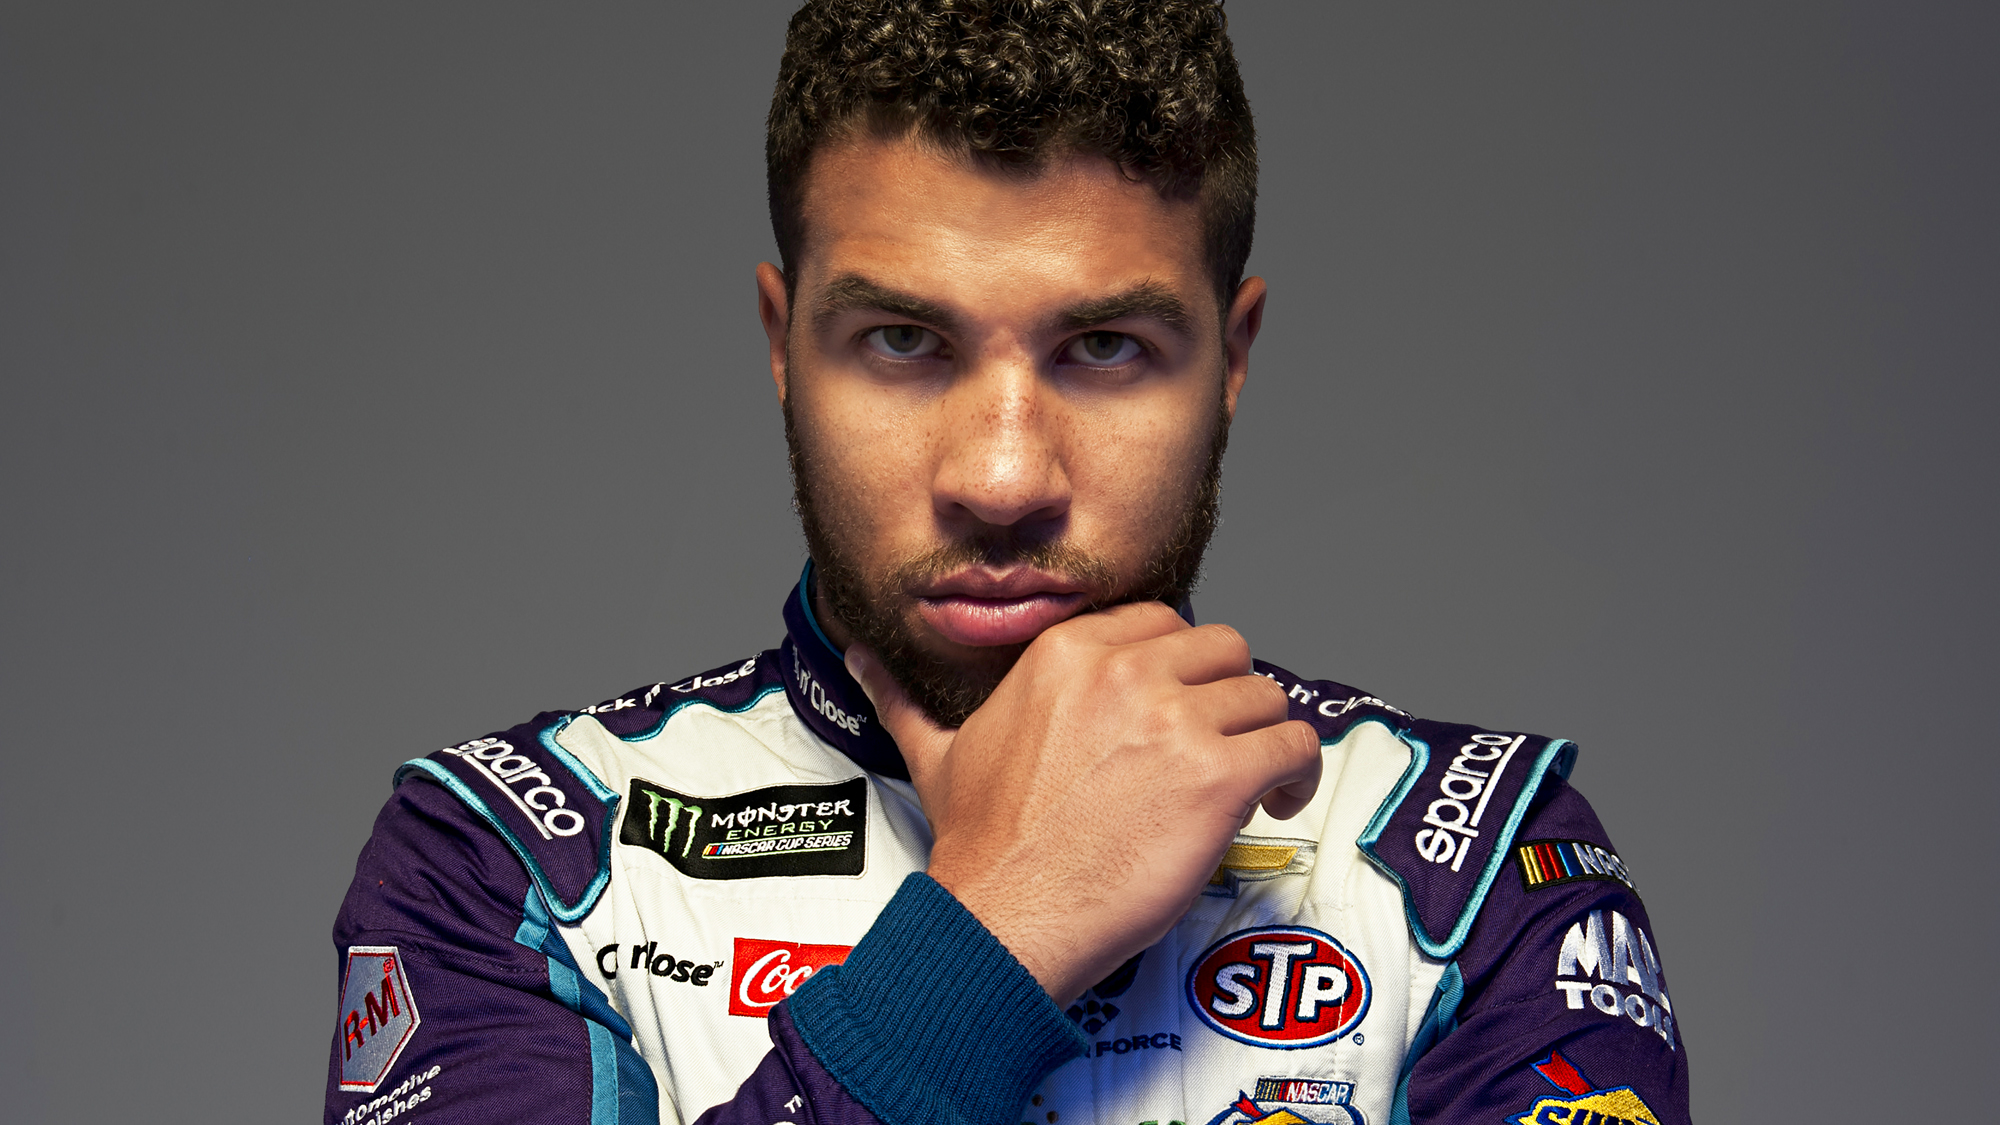 Bubba Wallace Has The Car And The Drive To Change Nascar